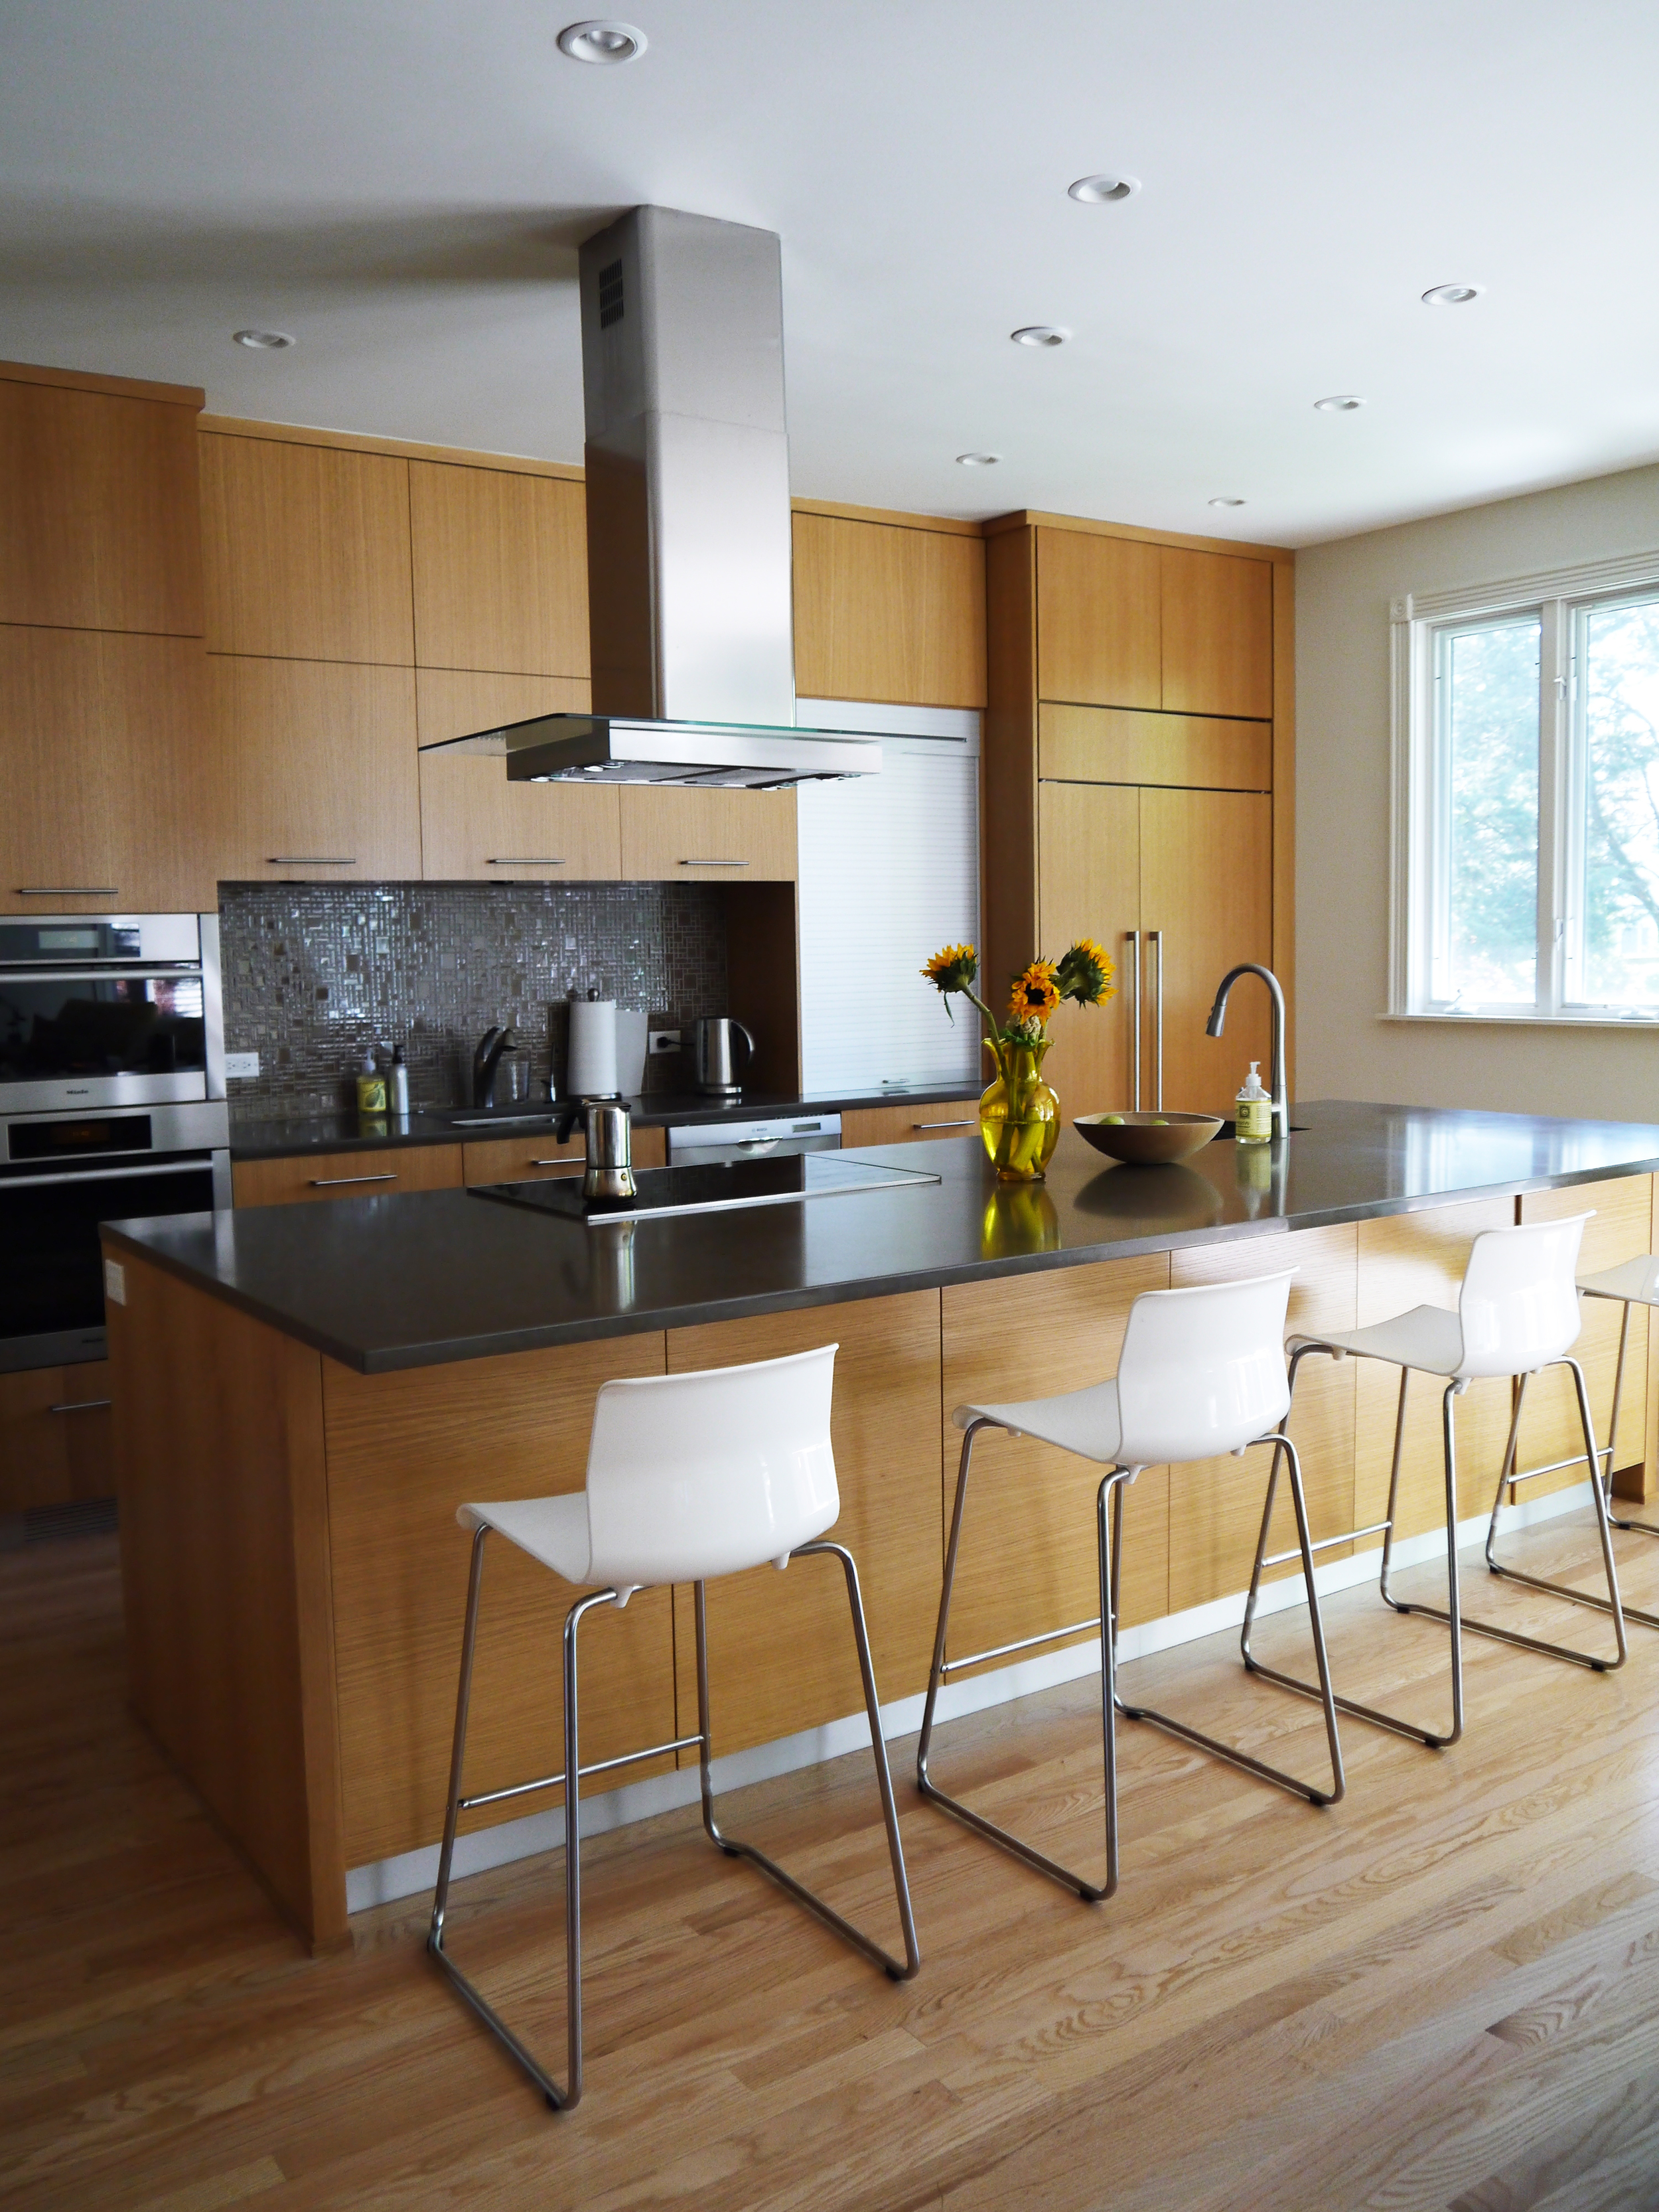 2 Point Perspective - Wilmette Residence Kitchen